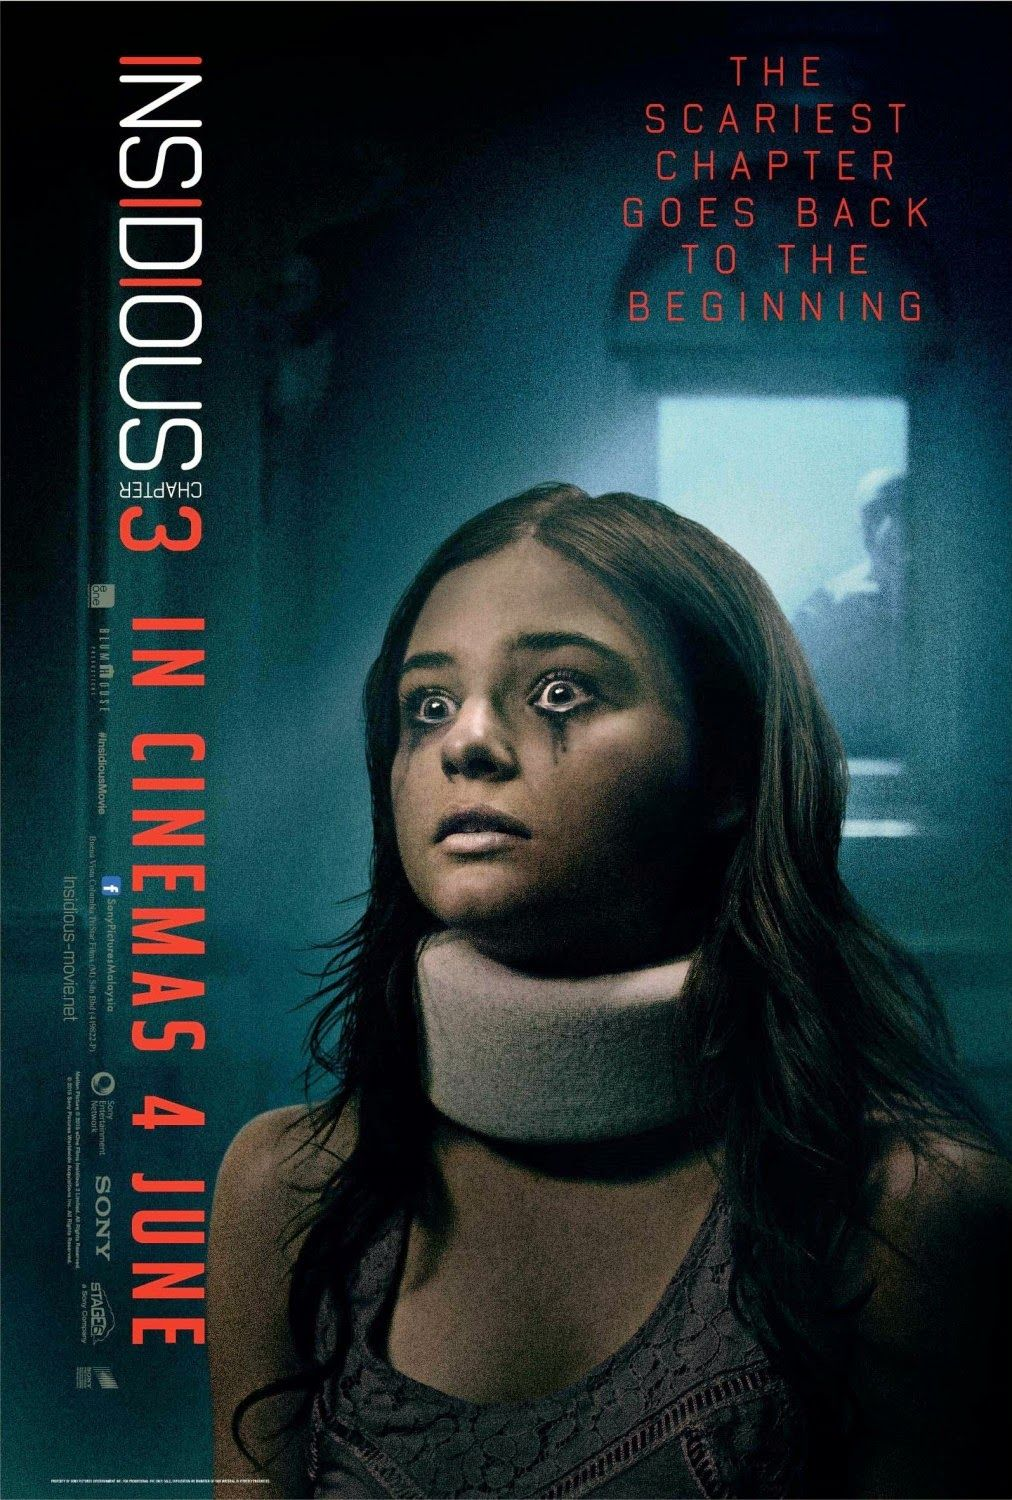 New Insidious Chapter 3 Clip And 5 Posters Insidious Insidious Movie Chapter 3